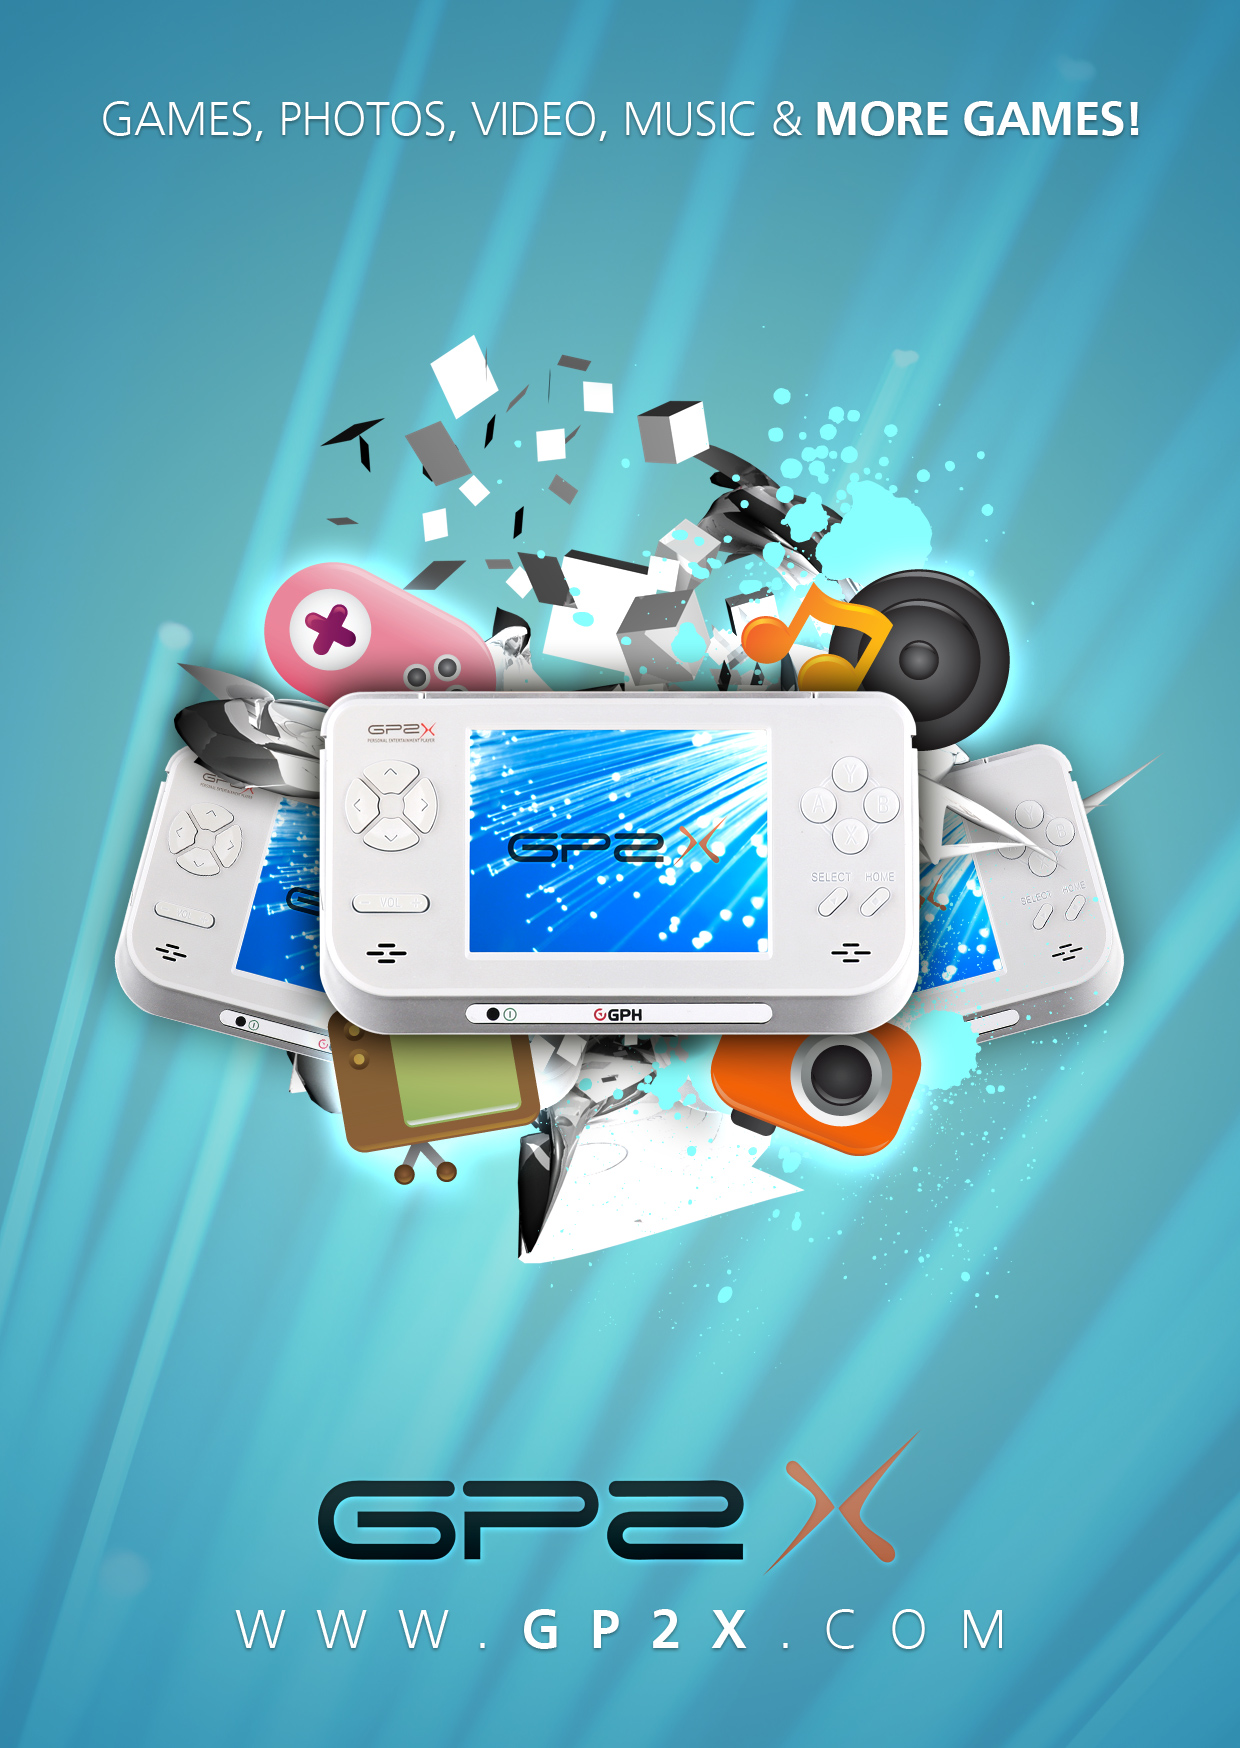 Designing a portable gaming device poster photoshop lady gp2x console advertisement design baditri Gallery